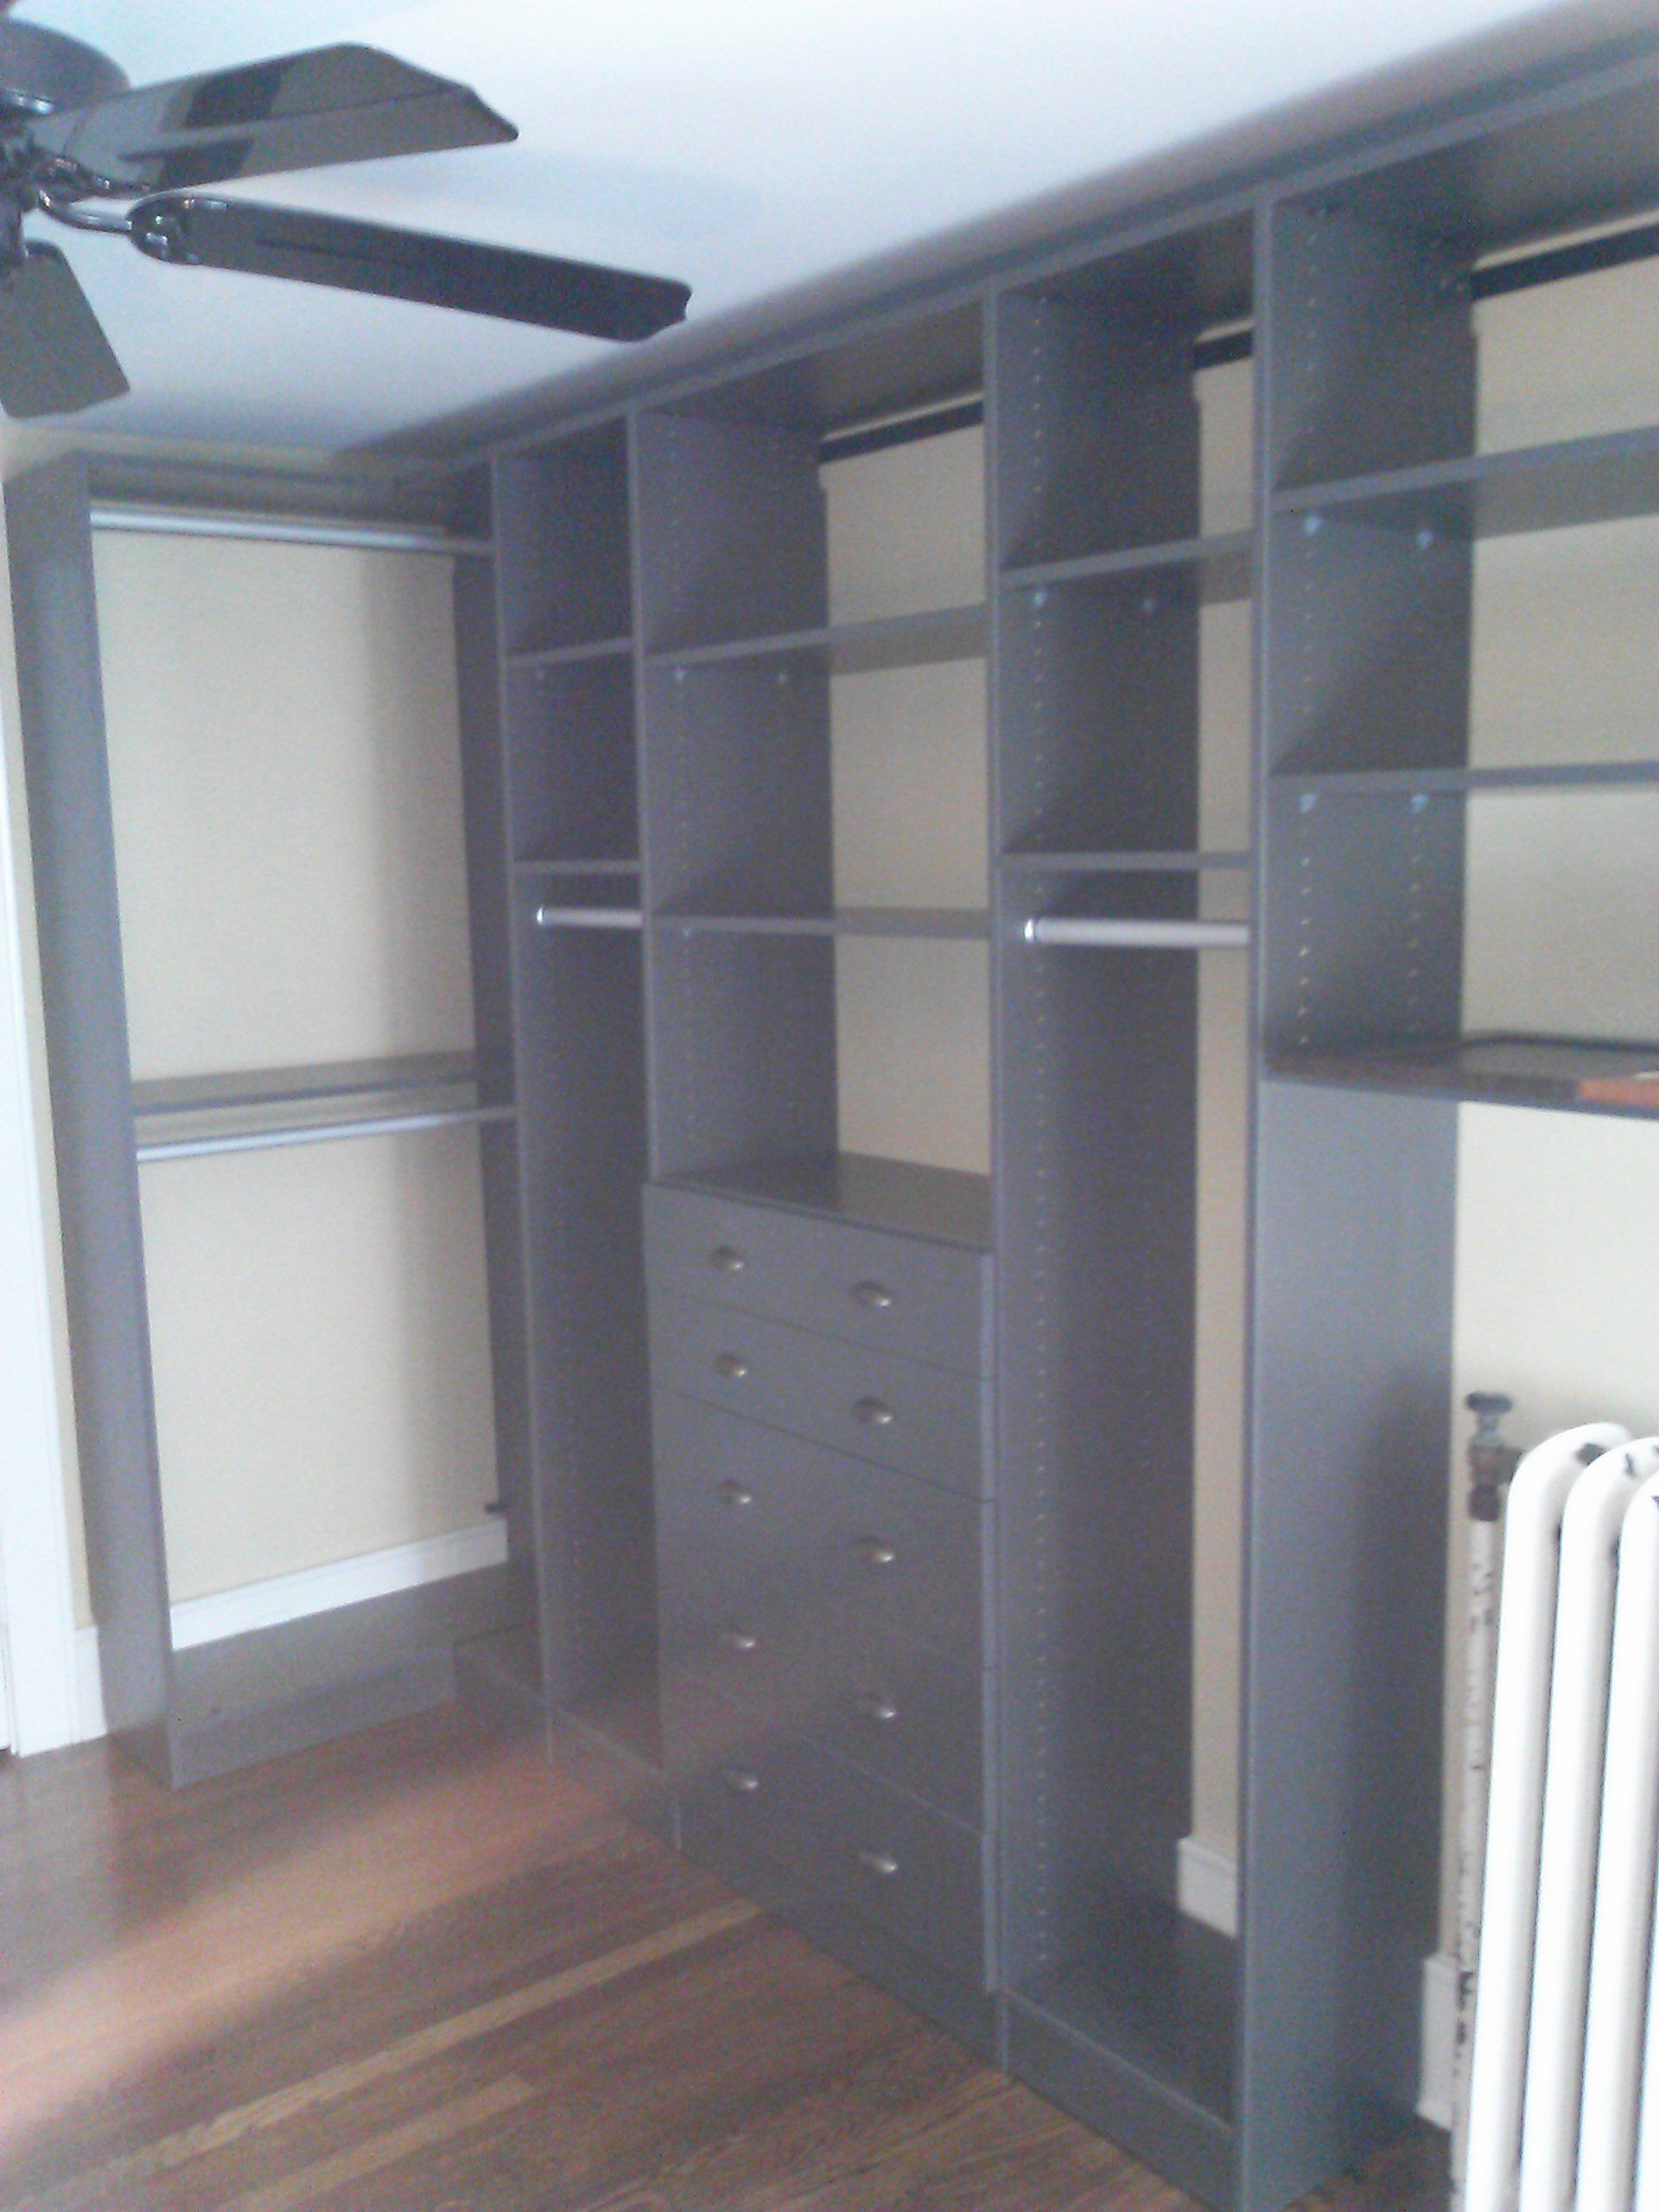 Walk in closet design for the home pinterest - Small closet design layout ...